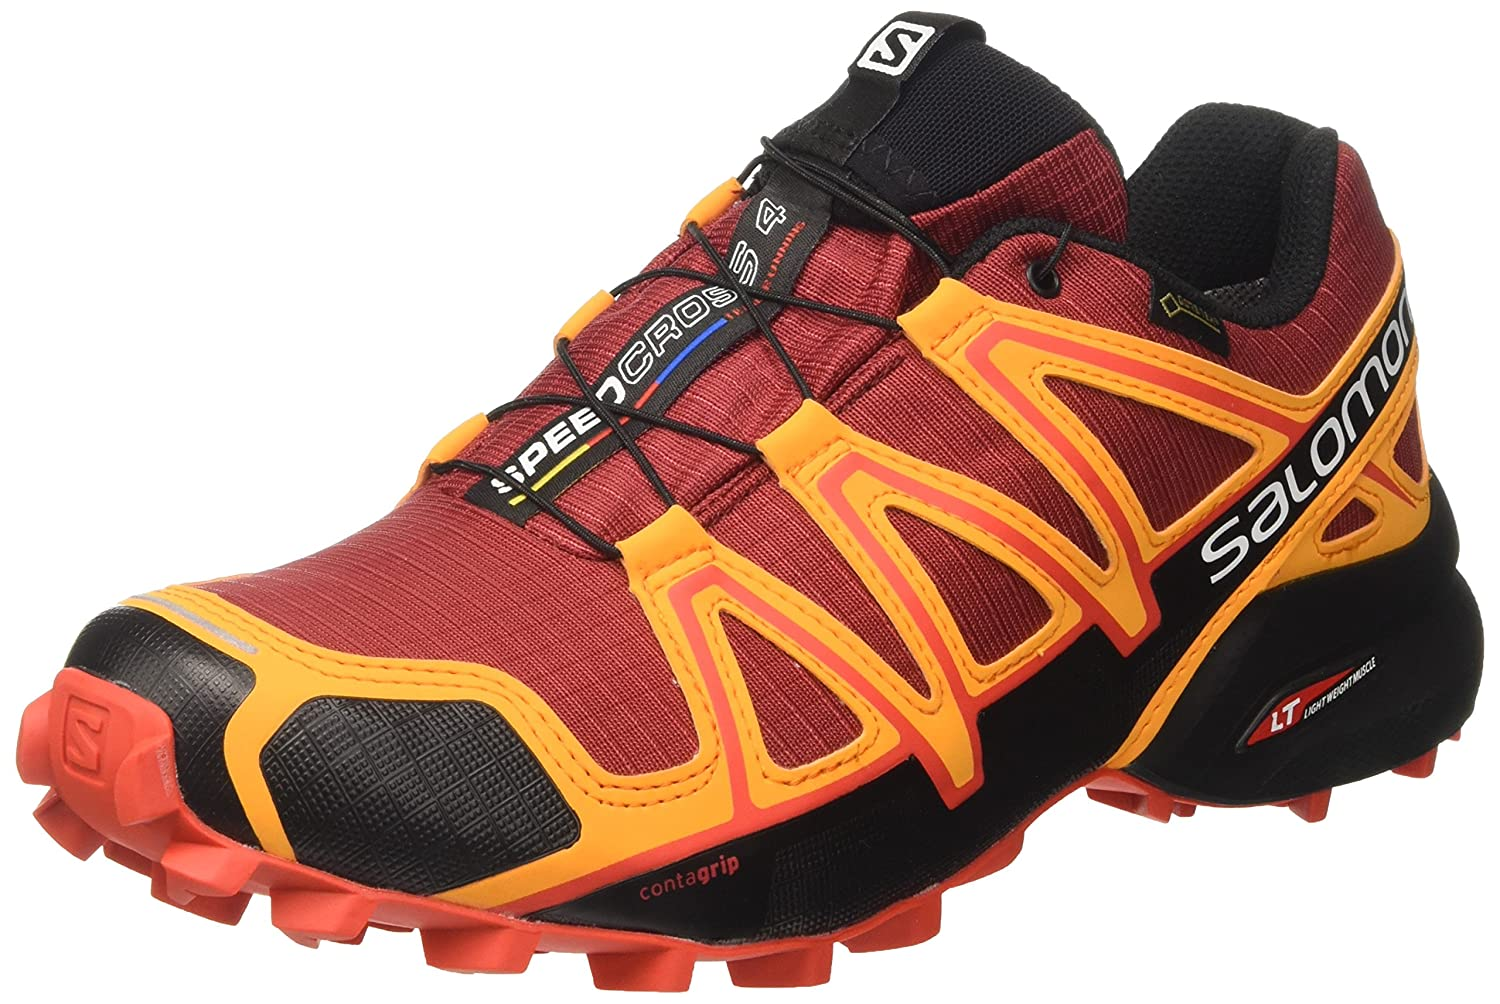 [サロモン] トレイルランニングシューズ SPEEDCROSS Sport 4 Exclusive) GTX メンズ 9.5 B01MZBEJZ2 Red Dahlia/ Bright Marigold (Hdo Sport Exclusive) 9.5 D(M) US 9.5 D(M) US|Red Dahlia/ Bright Marigold (Hdo Sport Exclusive), 酒とキムチの浜田屋:b02c06c3 --- quati.midiax.dominiotemporario.com